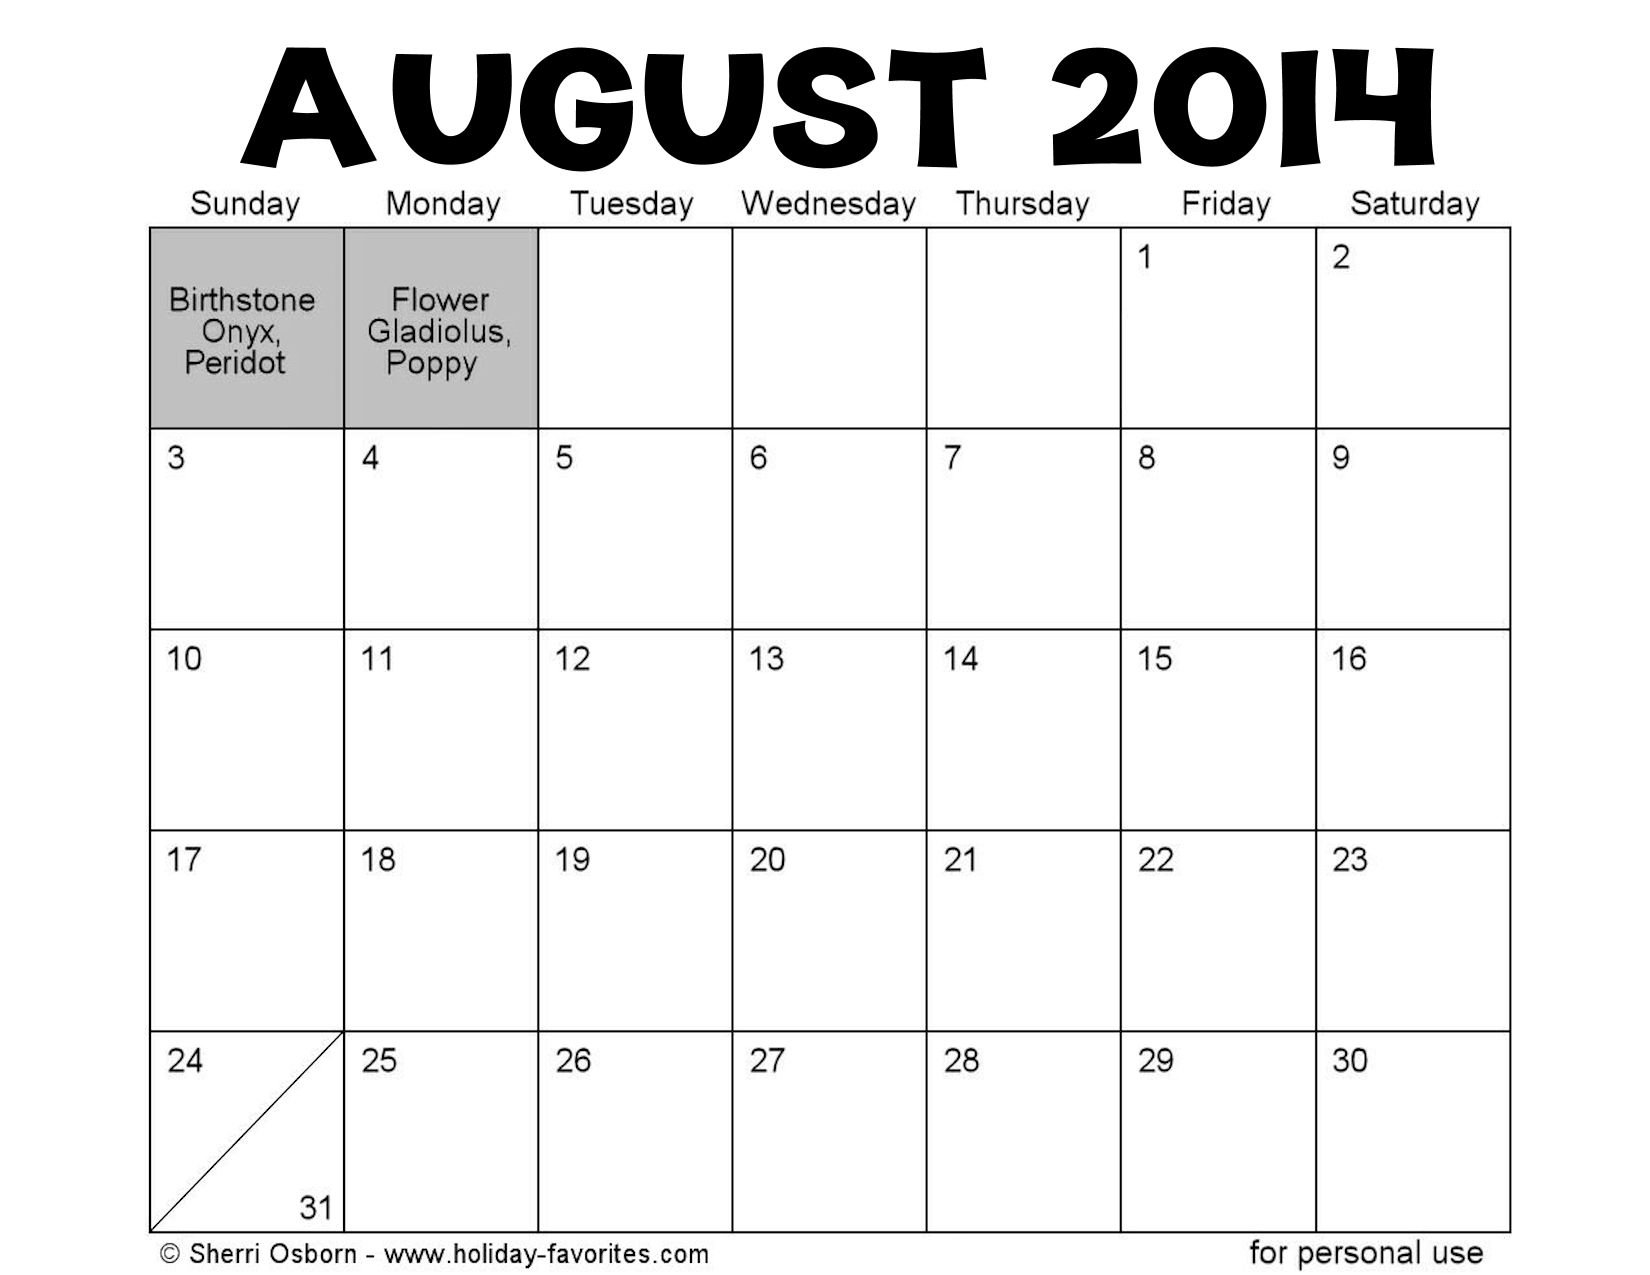 August 2014 Calendar with Holidays